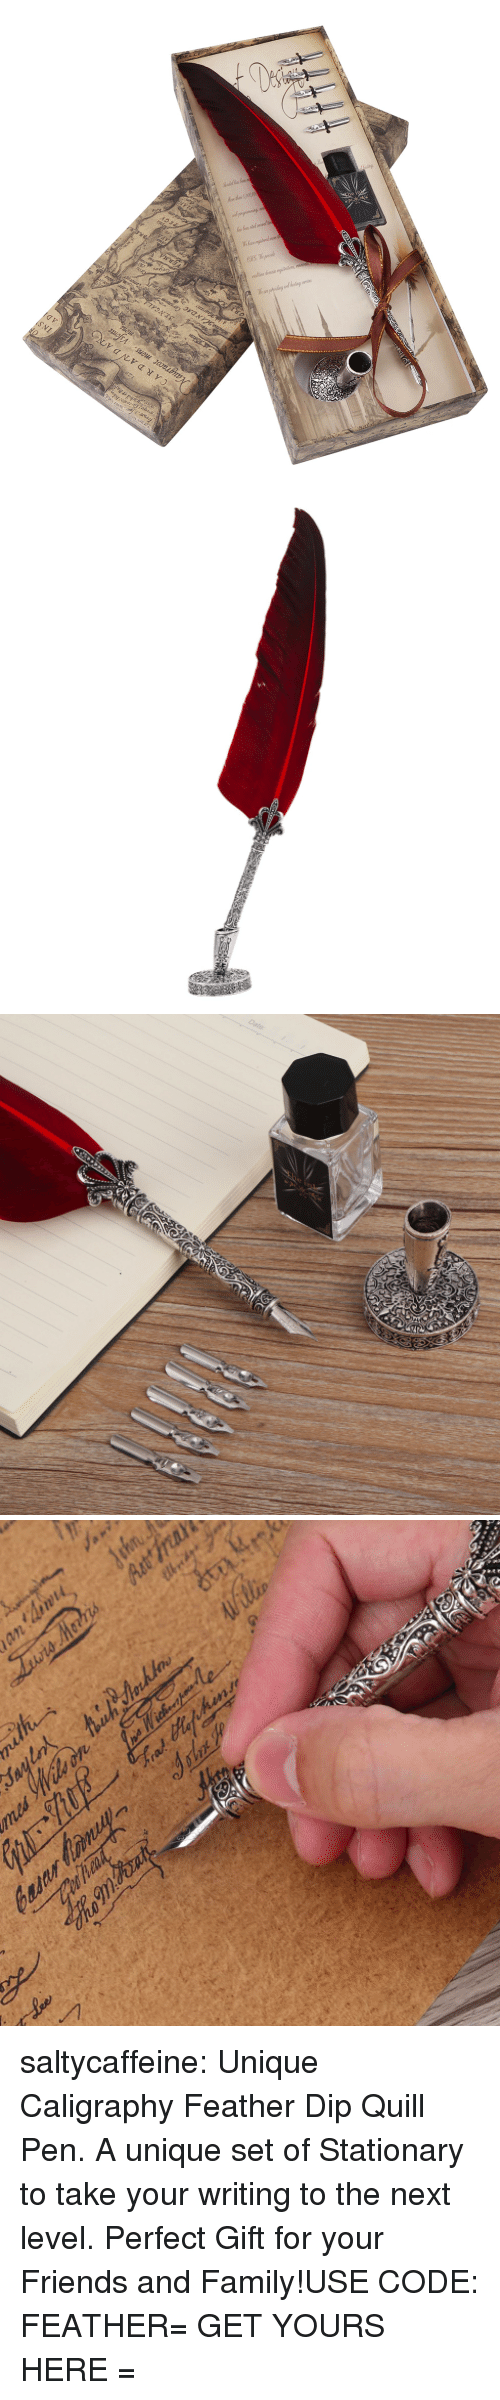 Quill: saltycaffeine:  Unique Caligraphy Feather Dip Quill Pen. A unique set of Stationary to take your writing to the next level. Perfect Gift for your Friends and Family!USE CODE: FEATHER= GET YOURS HERE =